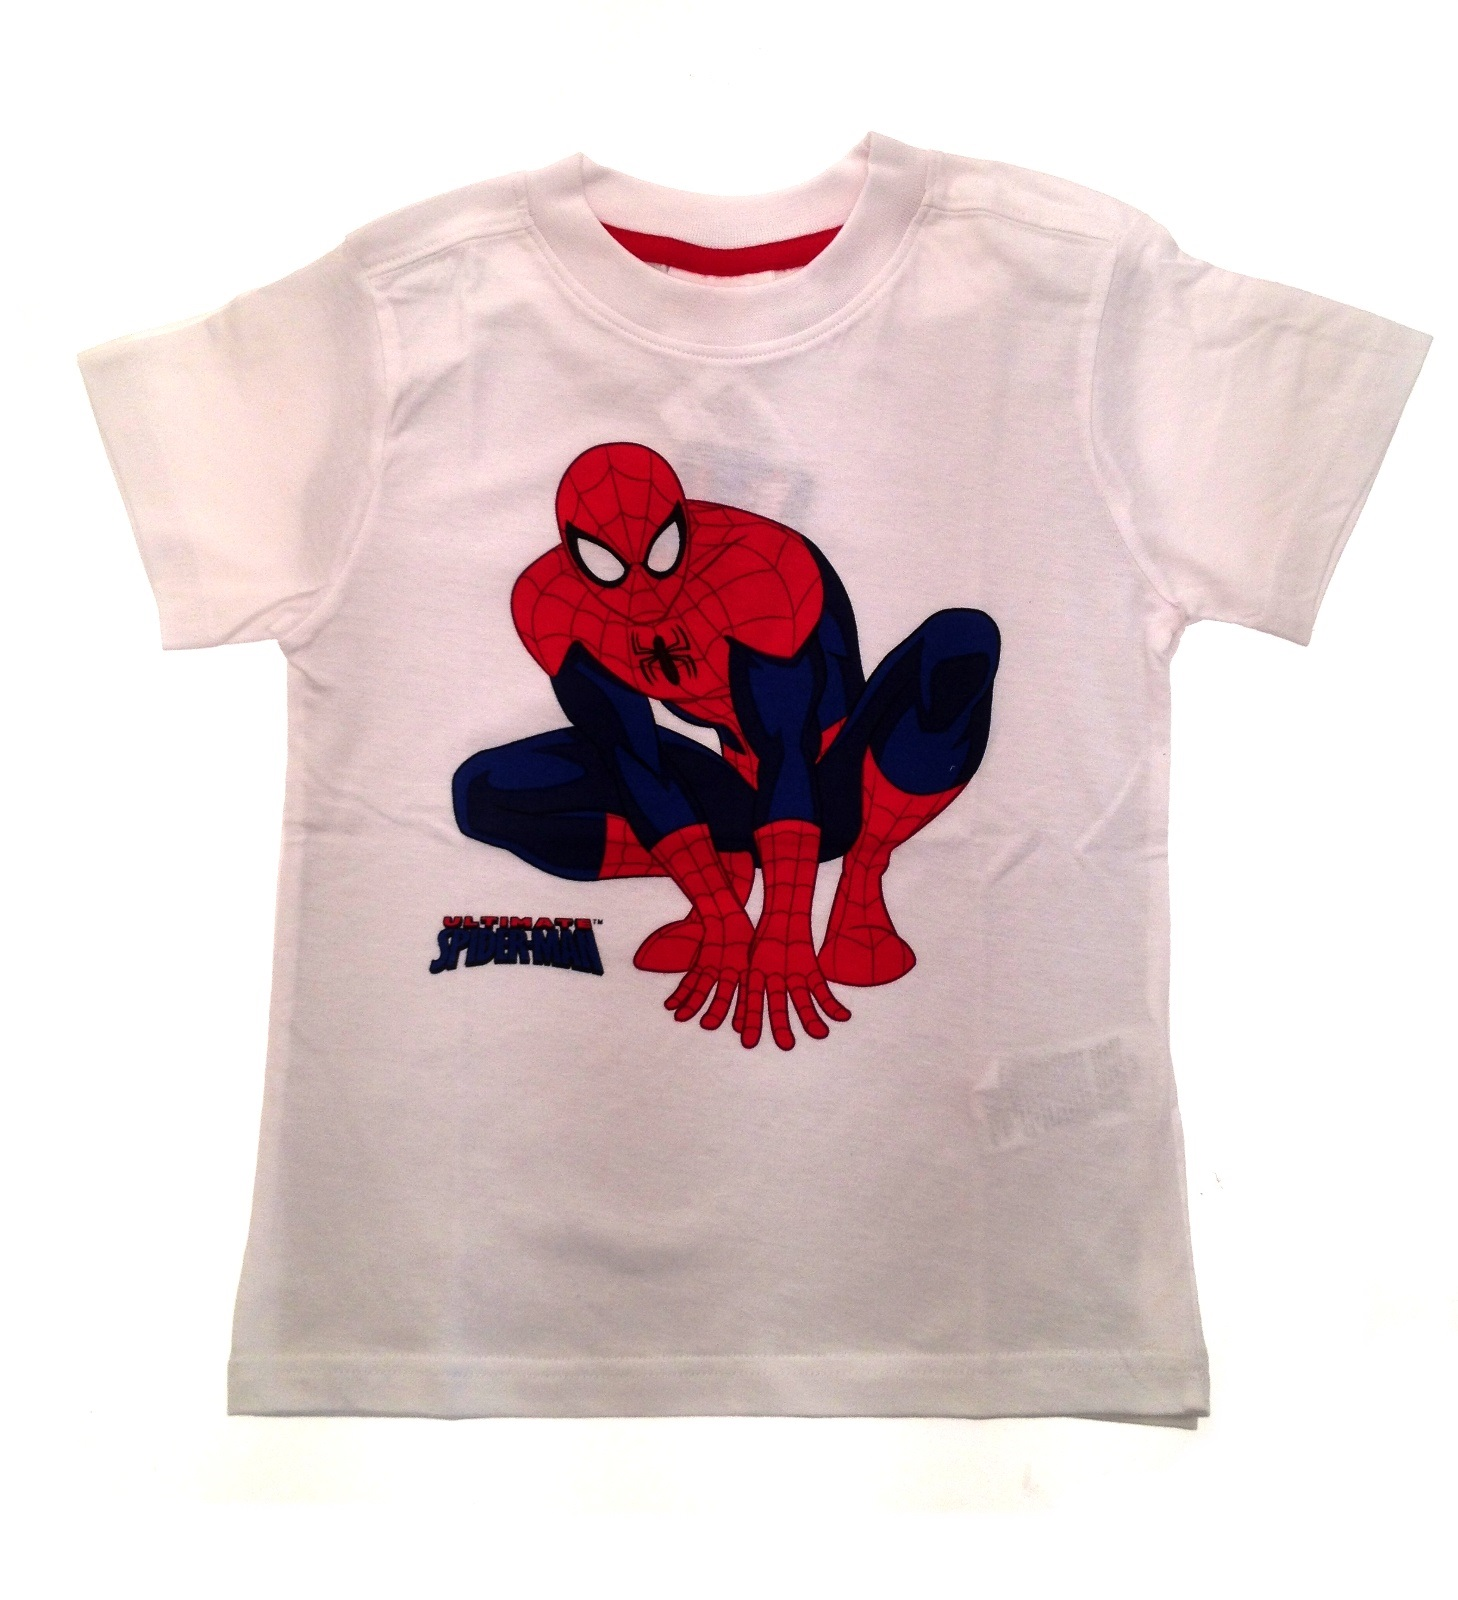 Marvel Ultimate Spiderman Boys Childrens Clothing T Shirt Top Size UK 2-8 Years